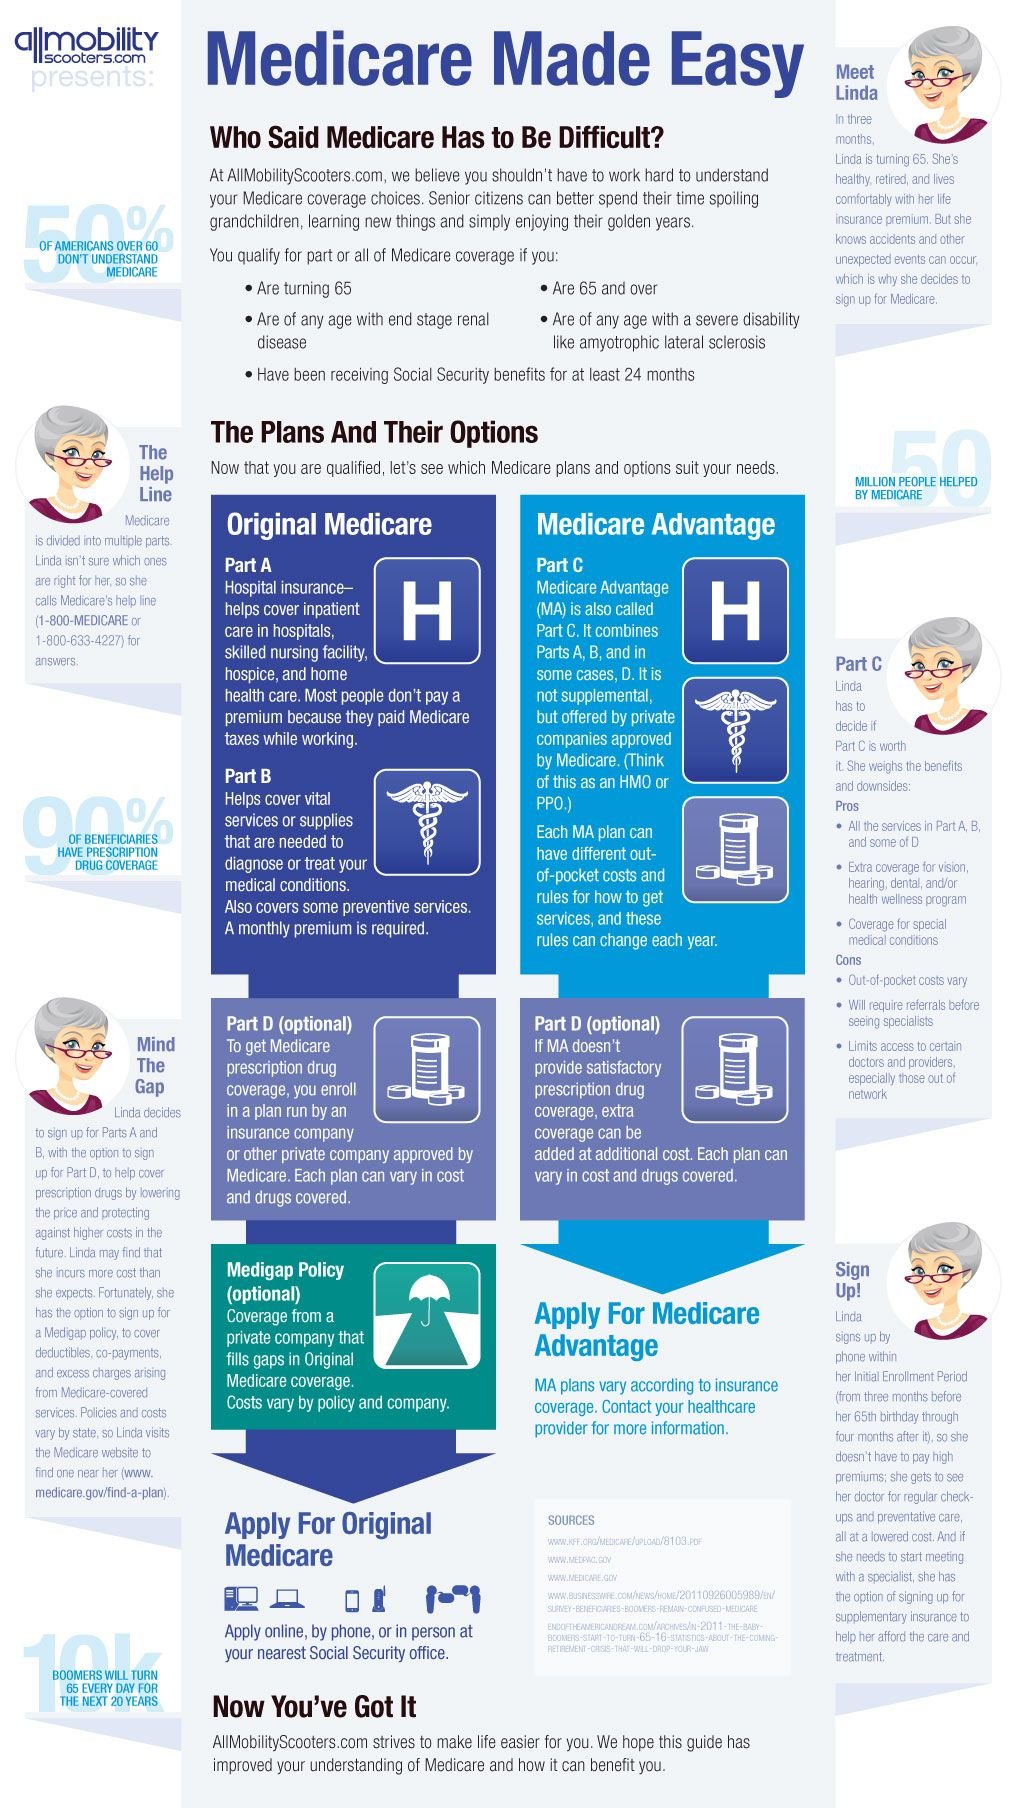 Medicare Made Easy Infographic Medical Social Work Geriatric Occupational Therapy Medicare